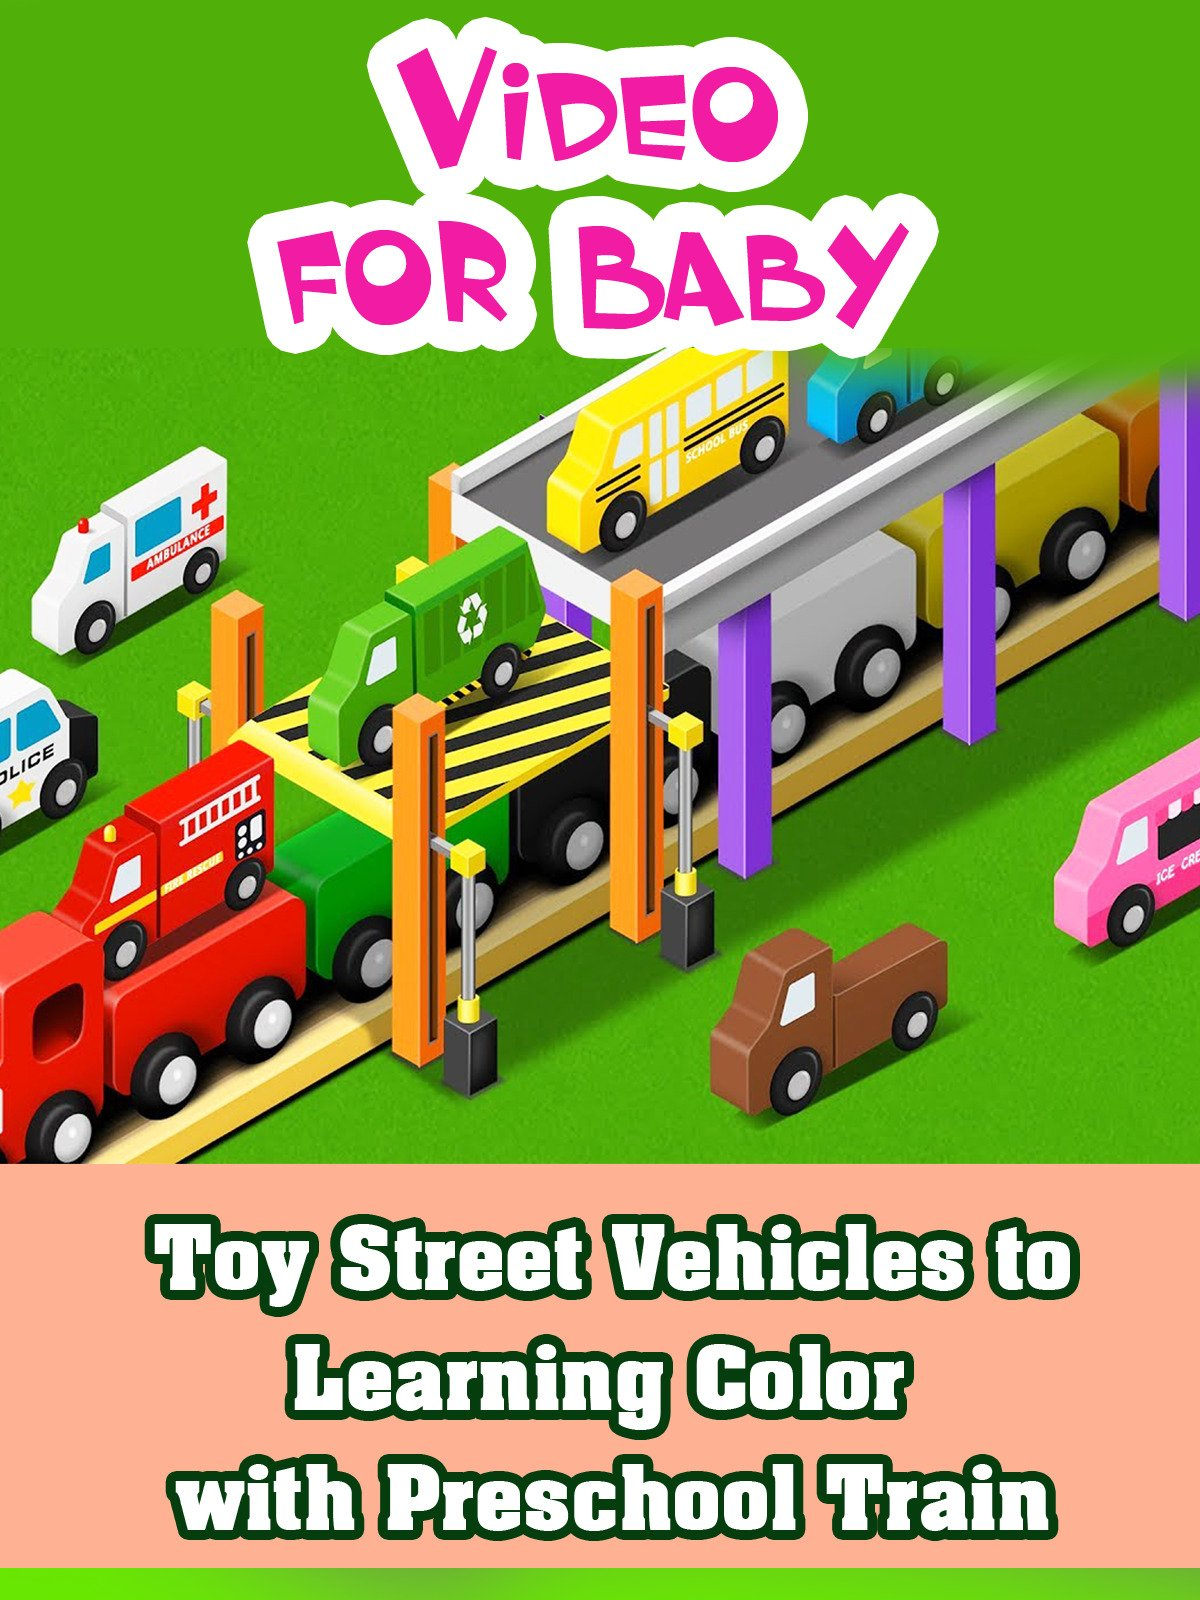 Toy Street Vehicles to Learning Color with Preschool Train